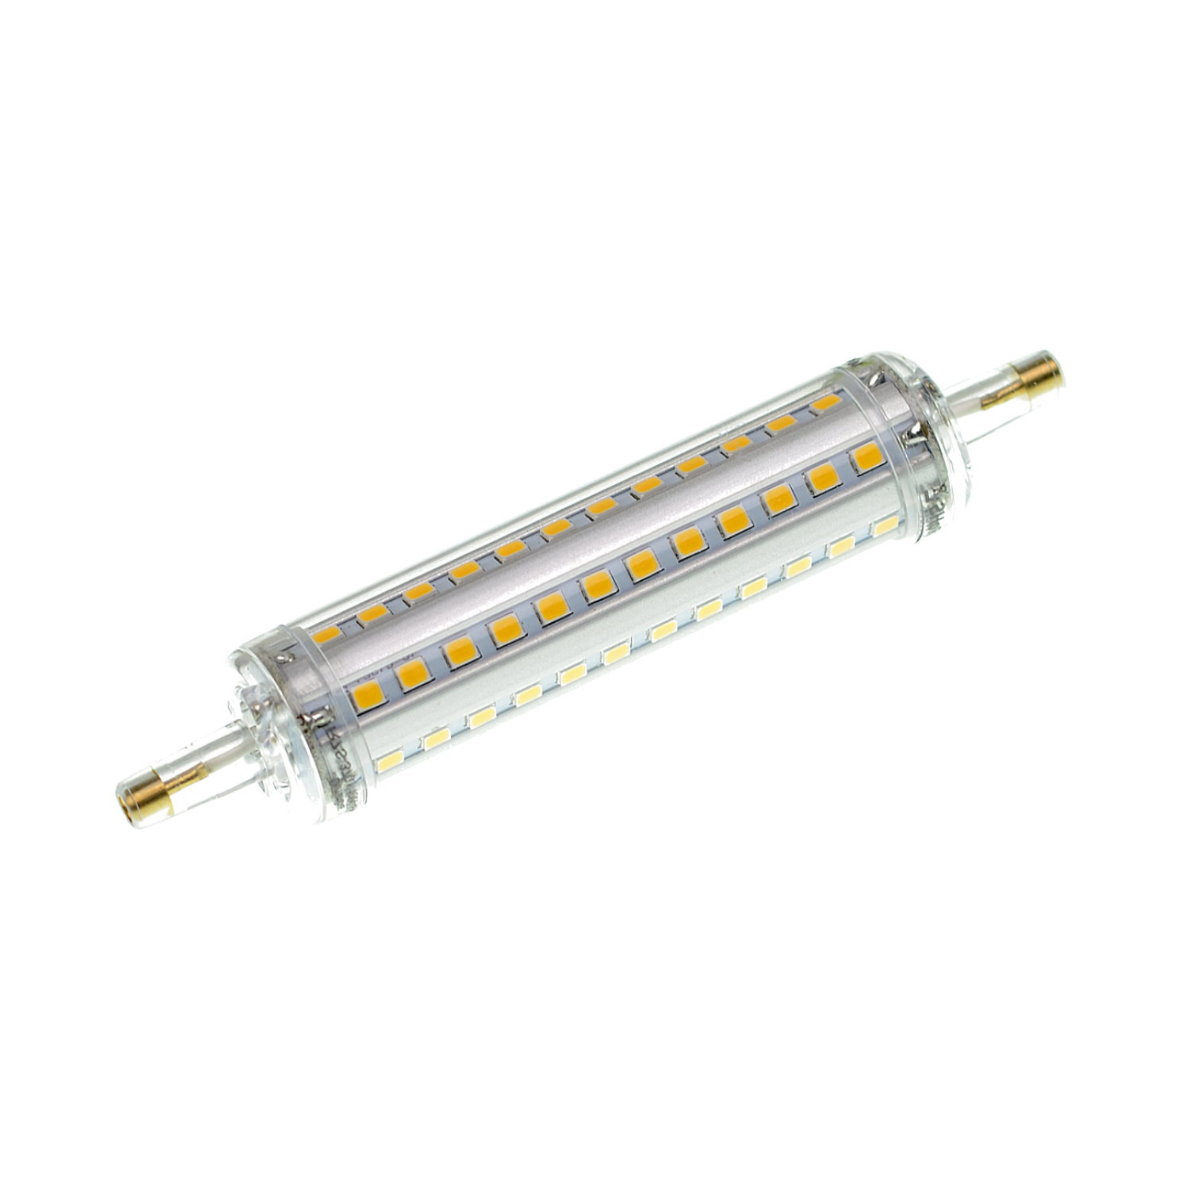 Lampadina R7s Led 78mm Of Lampadina Led Bacchetta 5w 10w R7s Riflettore Alogeno